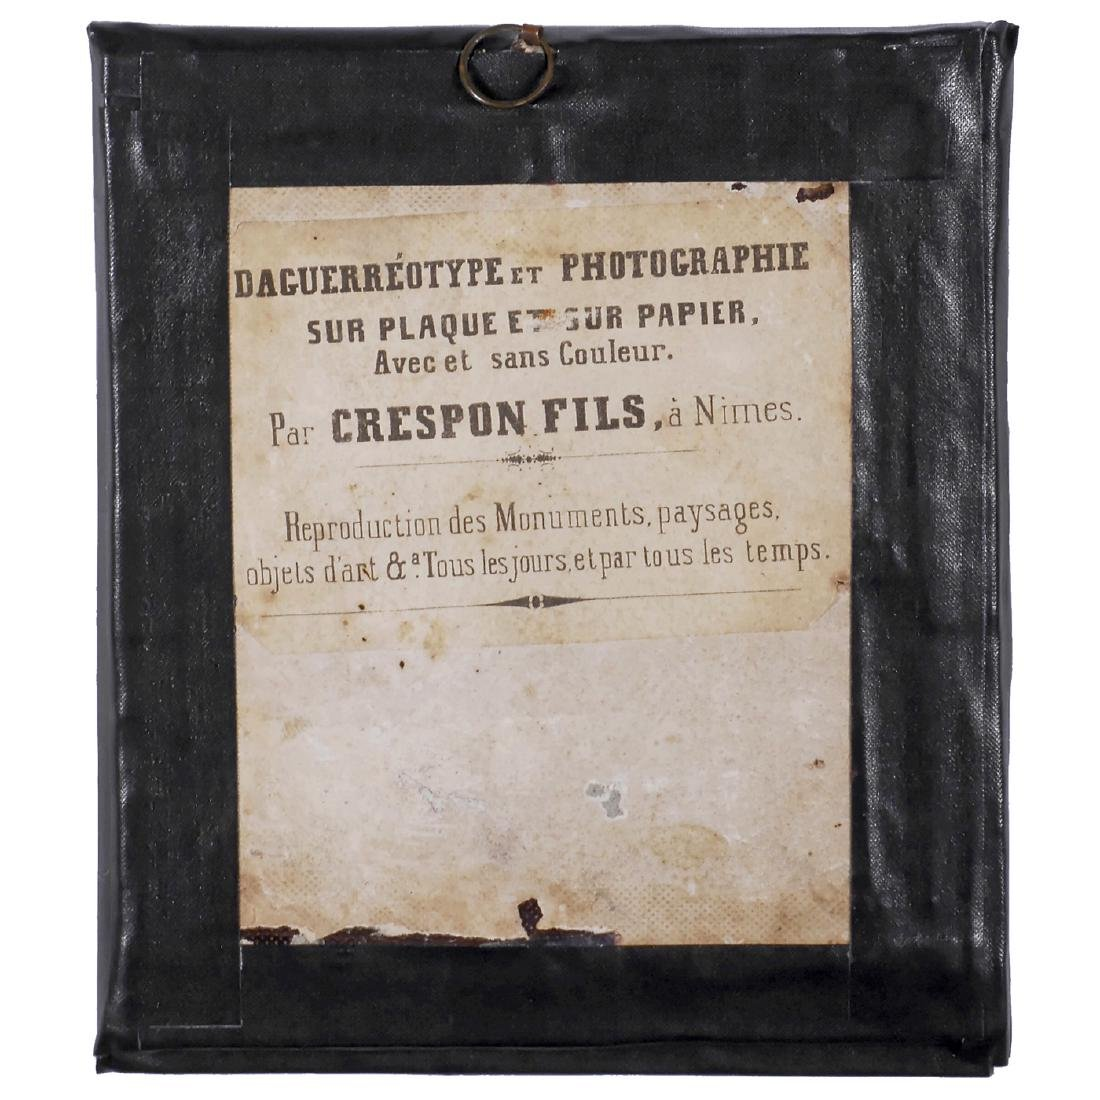 Daguerreotype by Crespon Fils and 4 Others, c. 1845 - 3